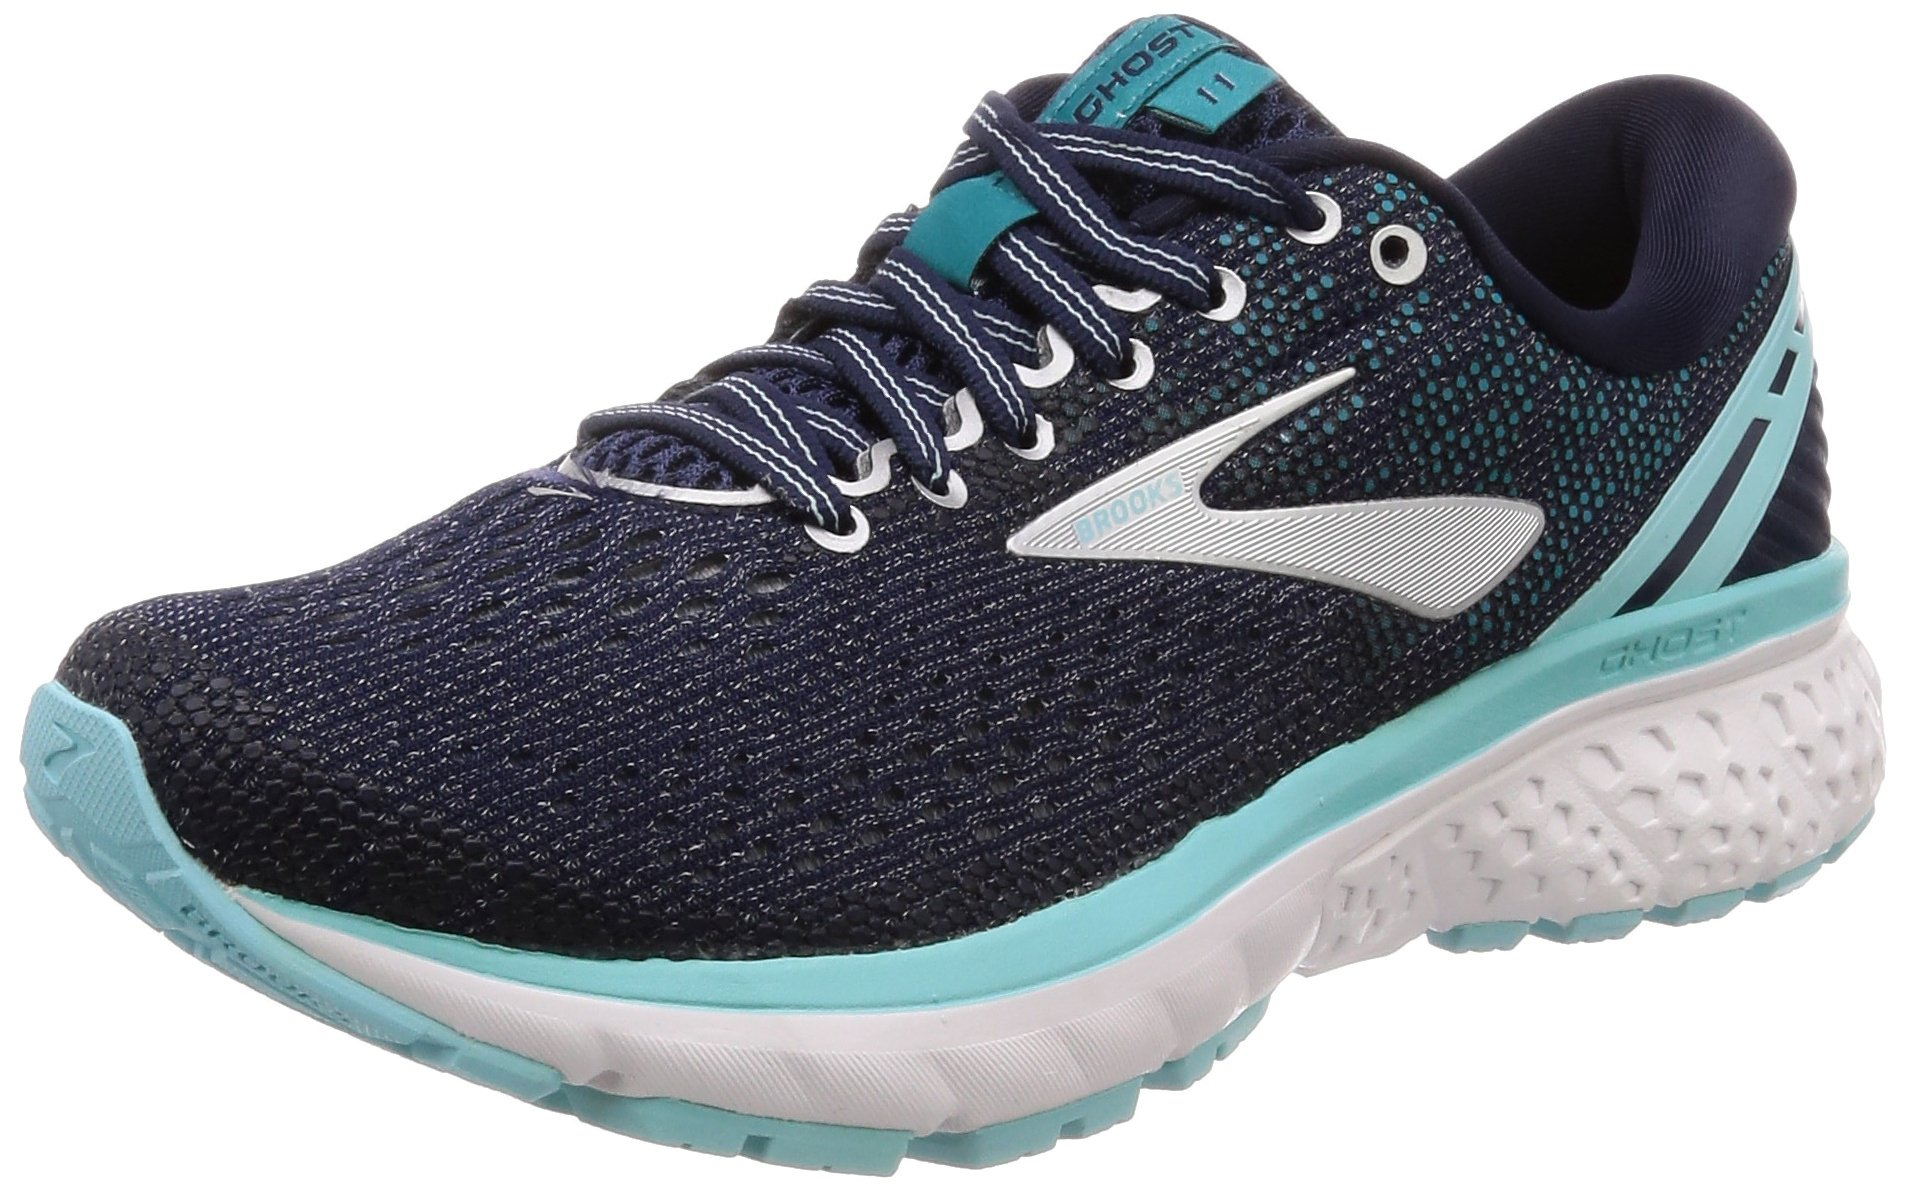 Brooks Womens Ghost 11 Running Shoe - Navy/Grey/Blue - D - 5.5 by Brooks (Image #1)